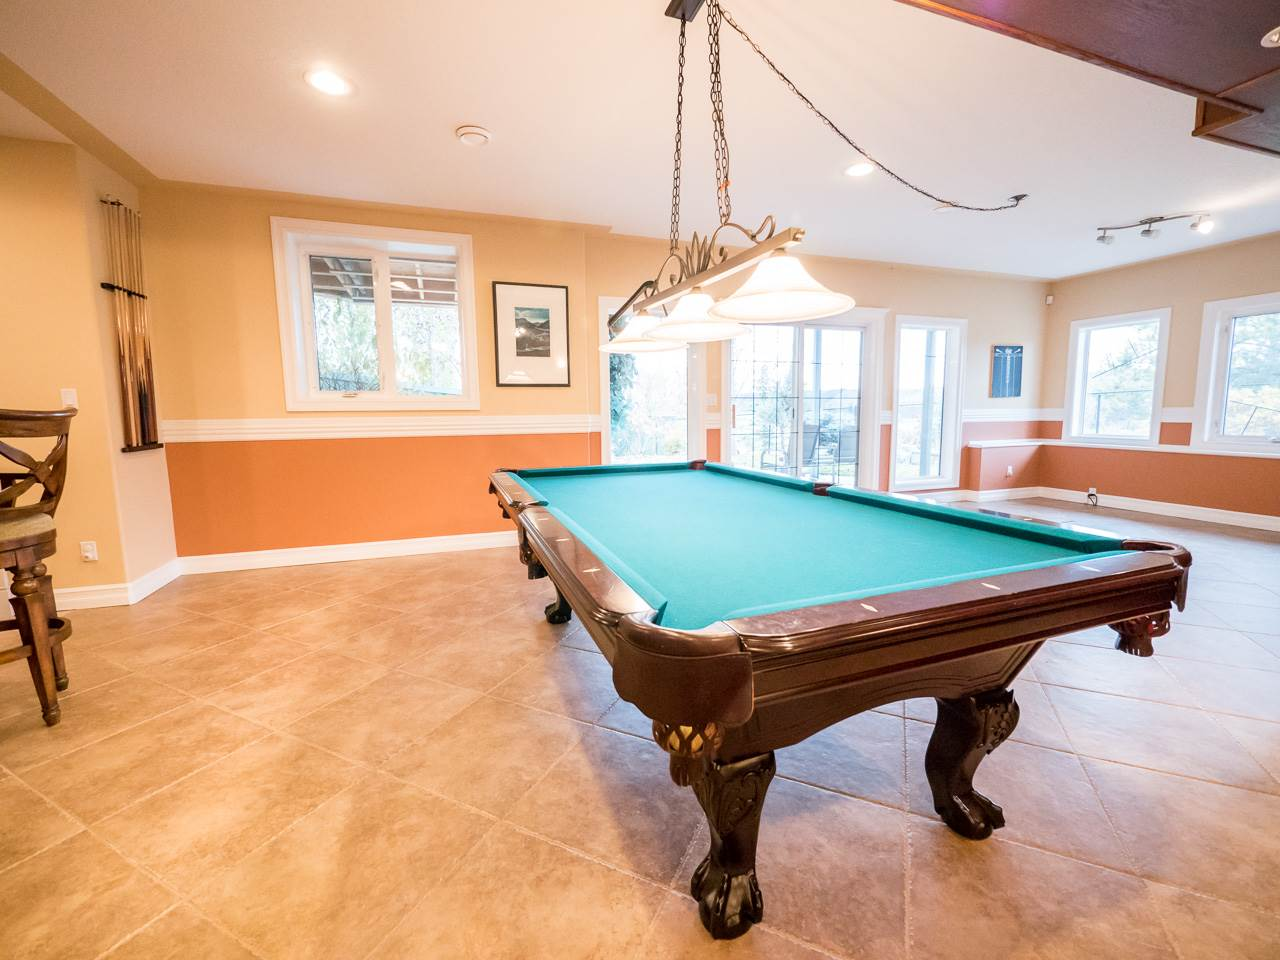 Spacious games room for family fun times.  Patio doors lead to the lower level patio great for summertime enjoyment.